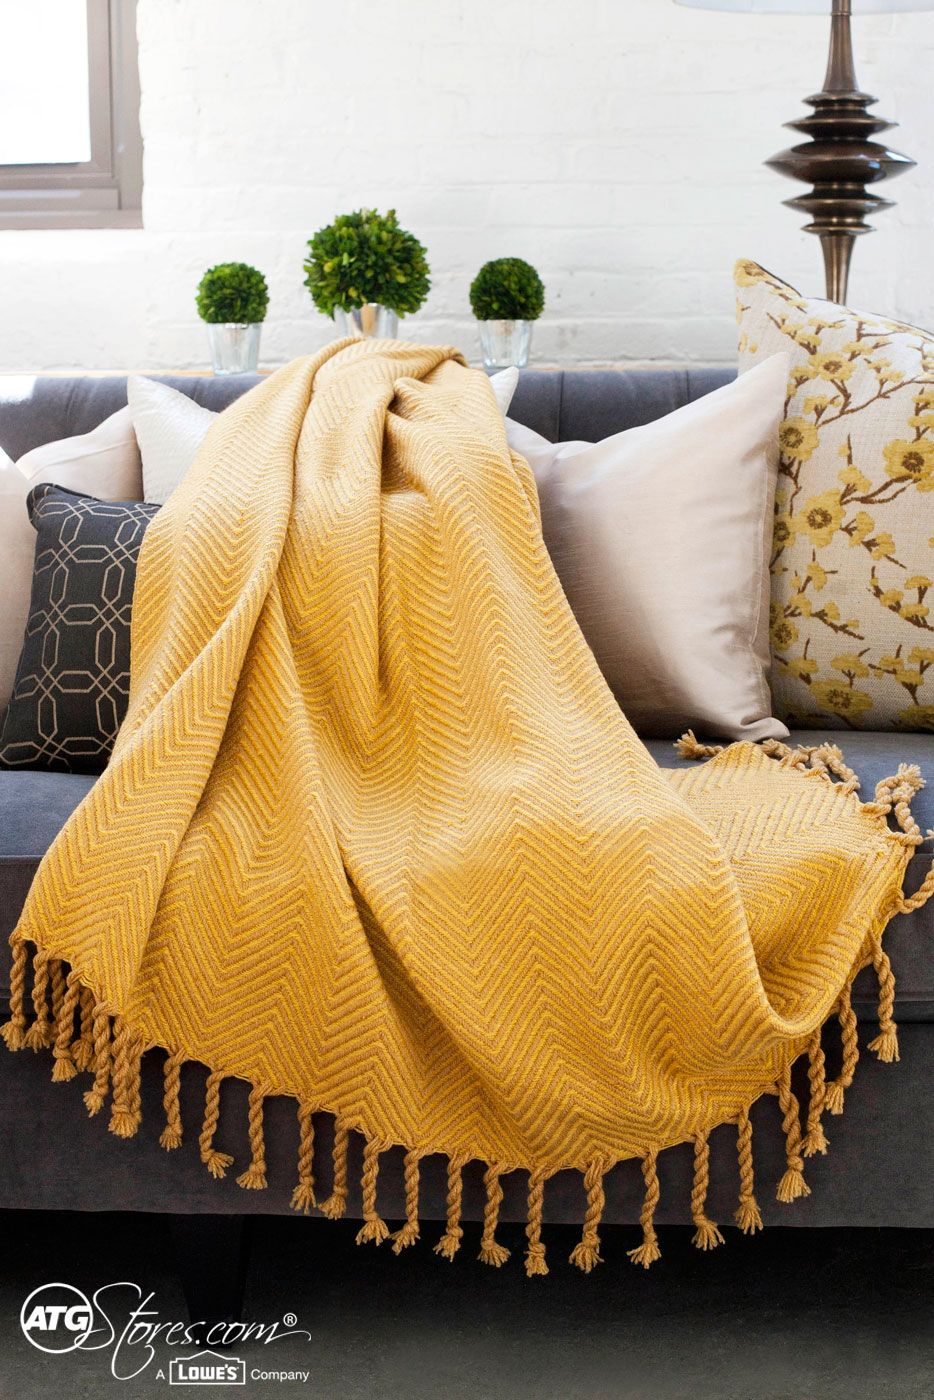 What S On Your Home Wish List This Year We Love This Cozy Throw That Warms Up Your Mood And Body Yellow Blankets Yellow Throw Blanket Yellow Decor